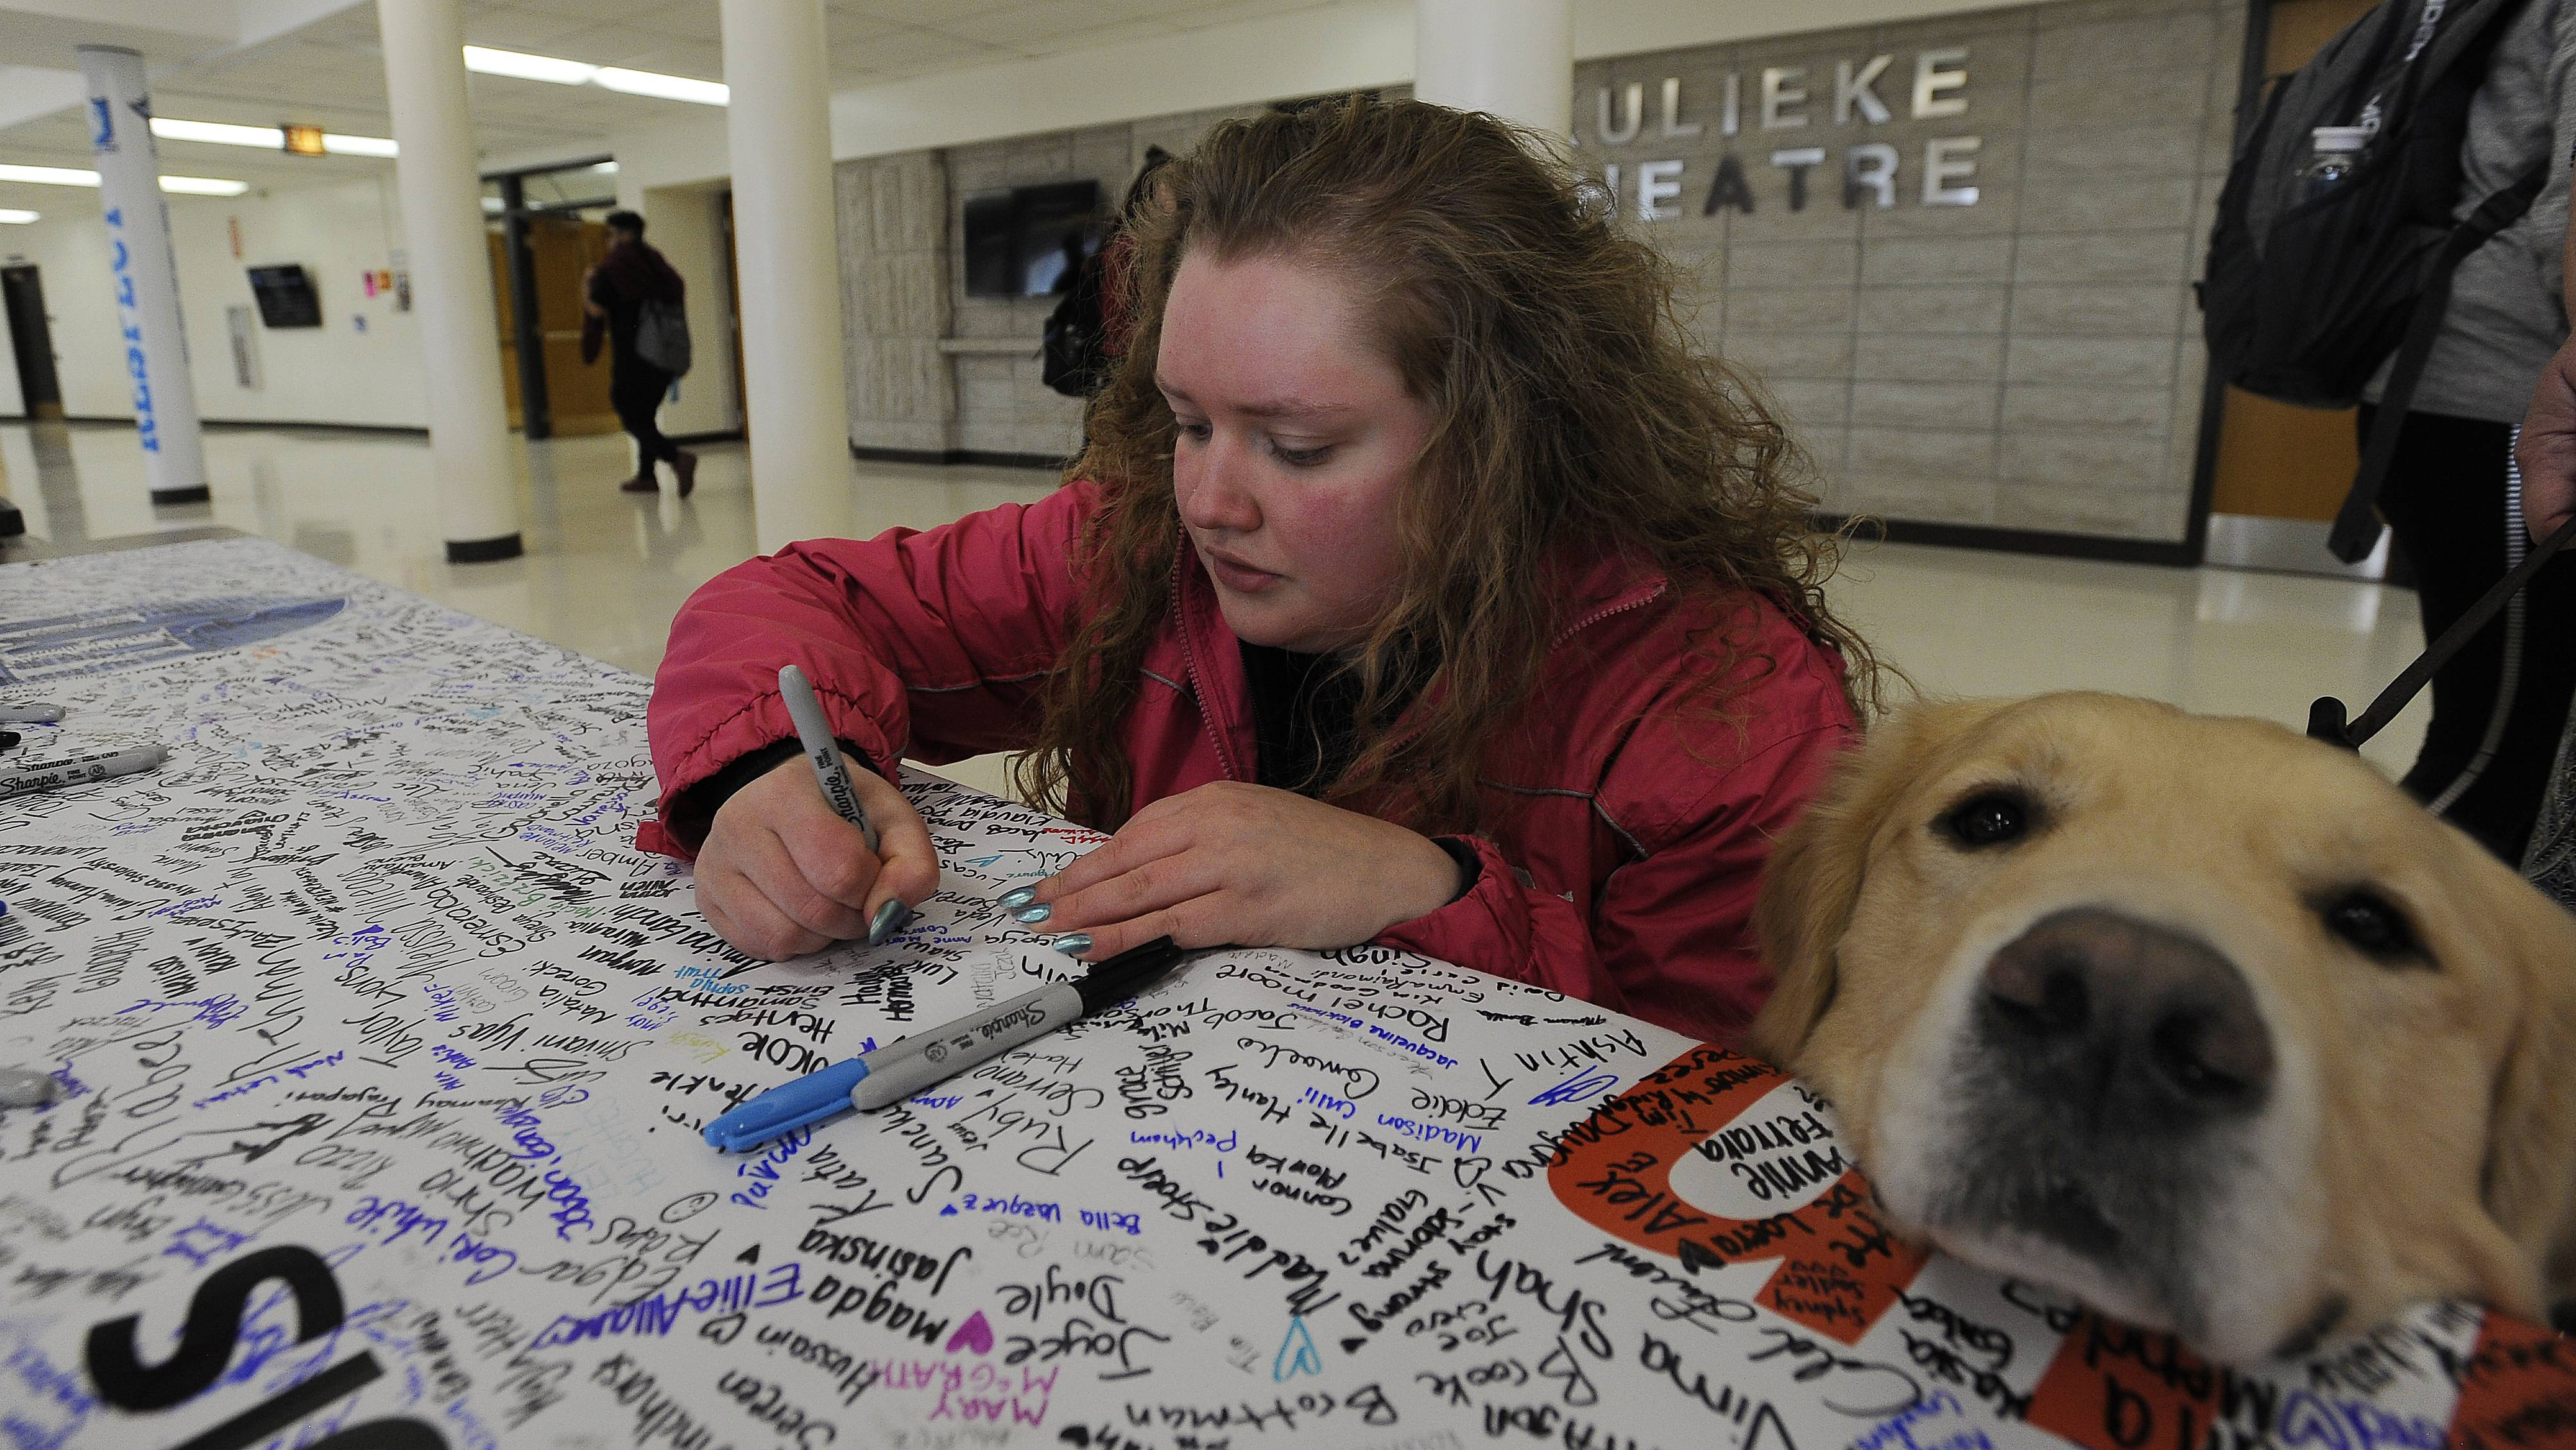 Anne Marie Conroy, 18, a senior at Prospect High School, signs a banner for the students of Parkland, Florida, alongside the school's therapy dog, Ringo. The banner has some 20,000 signatures.